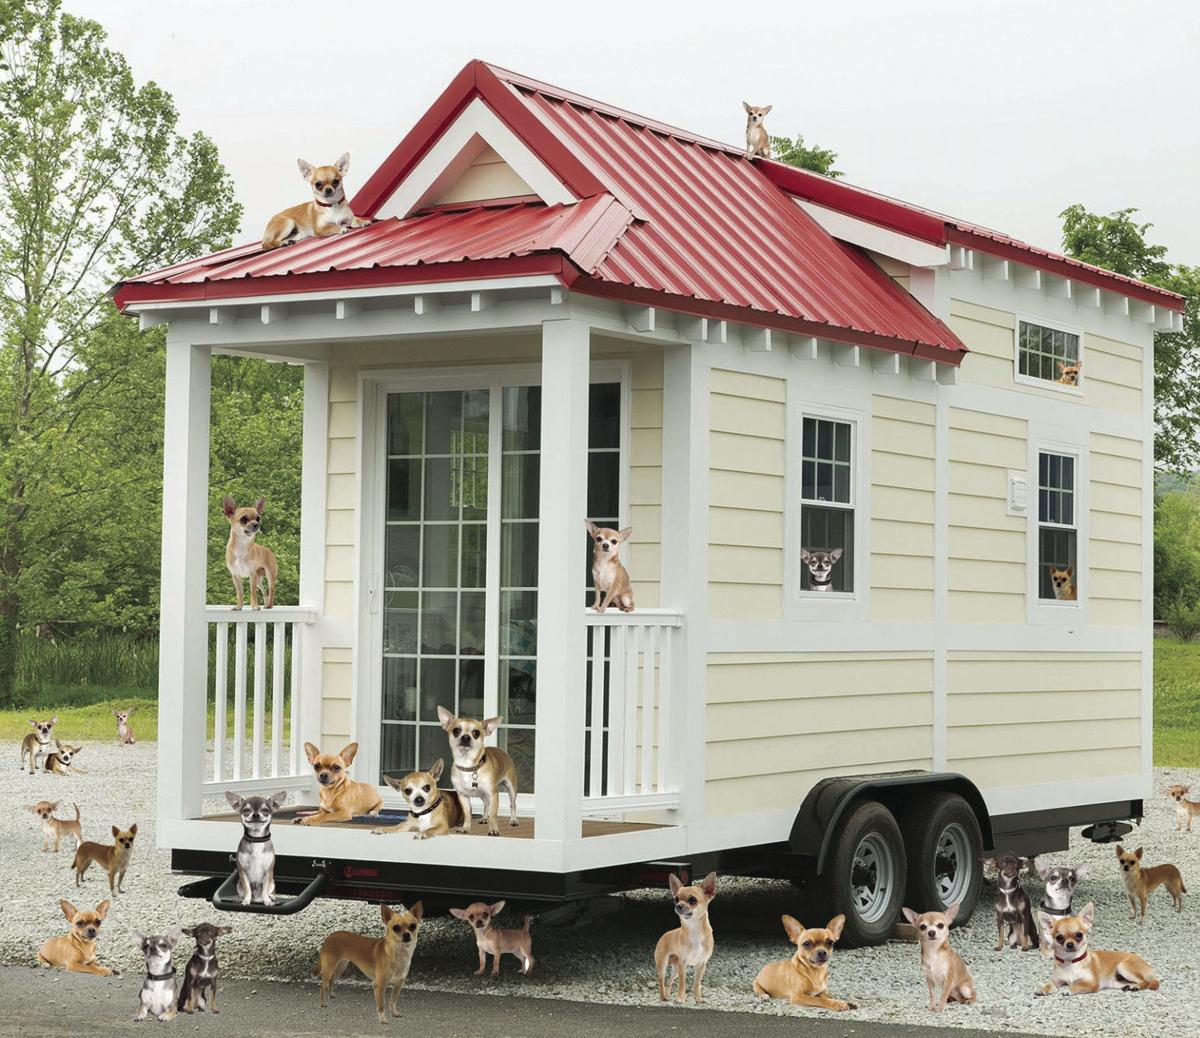 Tiny Houses Pets on best pigs for pets, small mammal pets, dwarf mice as pets, tiny houses on wheels, alot of pets, tiny houseon wheels floor plans, tiny home, tiny dogs, animal pets, strange but cute pets, small chameleon pets, home pets, tiny food, tiny cats, california pets, best cats for pets, australia pets, small pigs as pets,